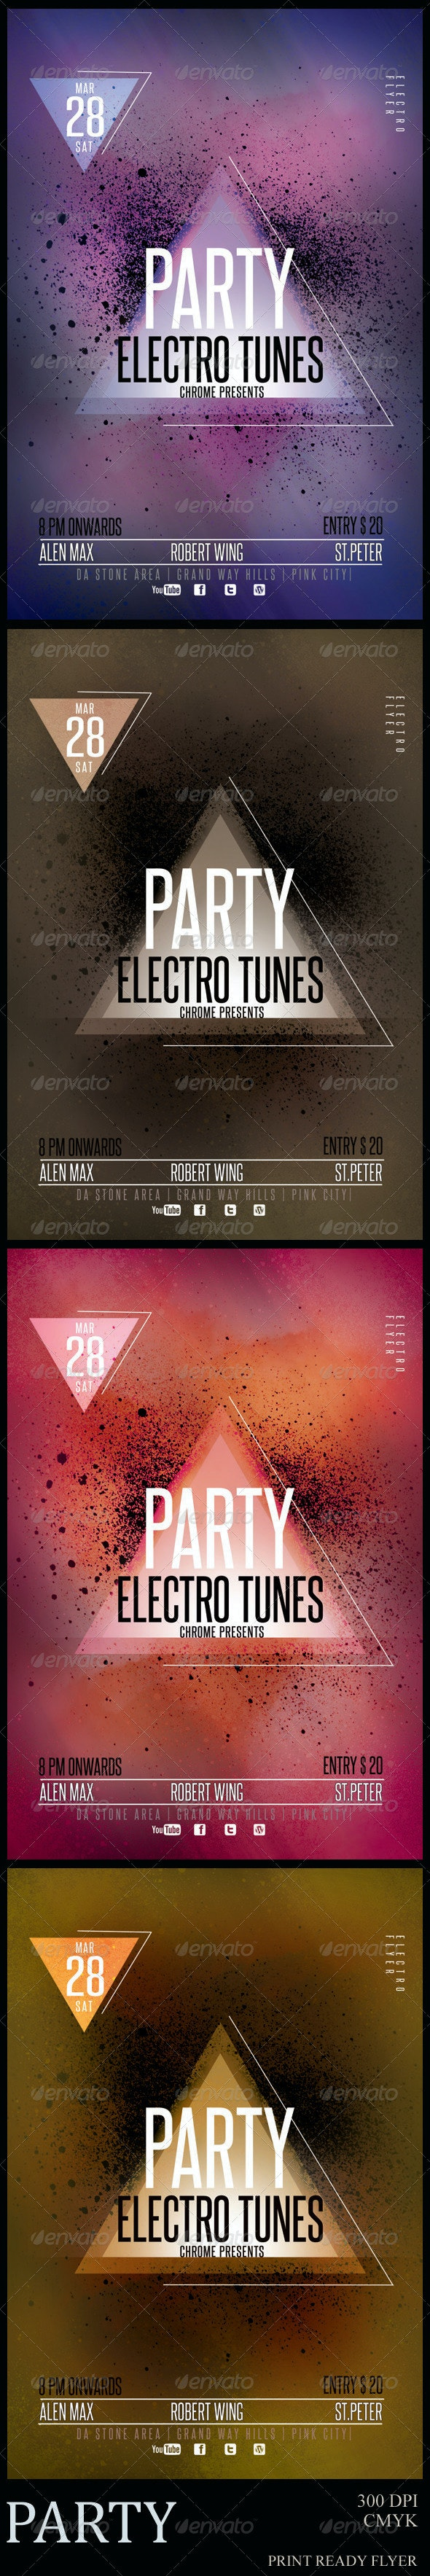 Party Electro Tunes Flyer Template - Clubs & Parties Events